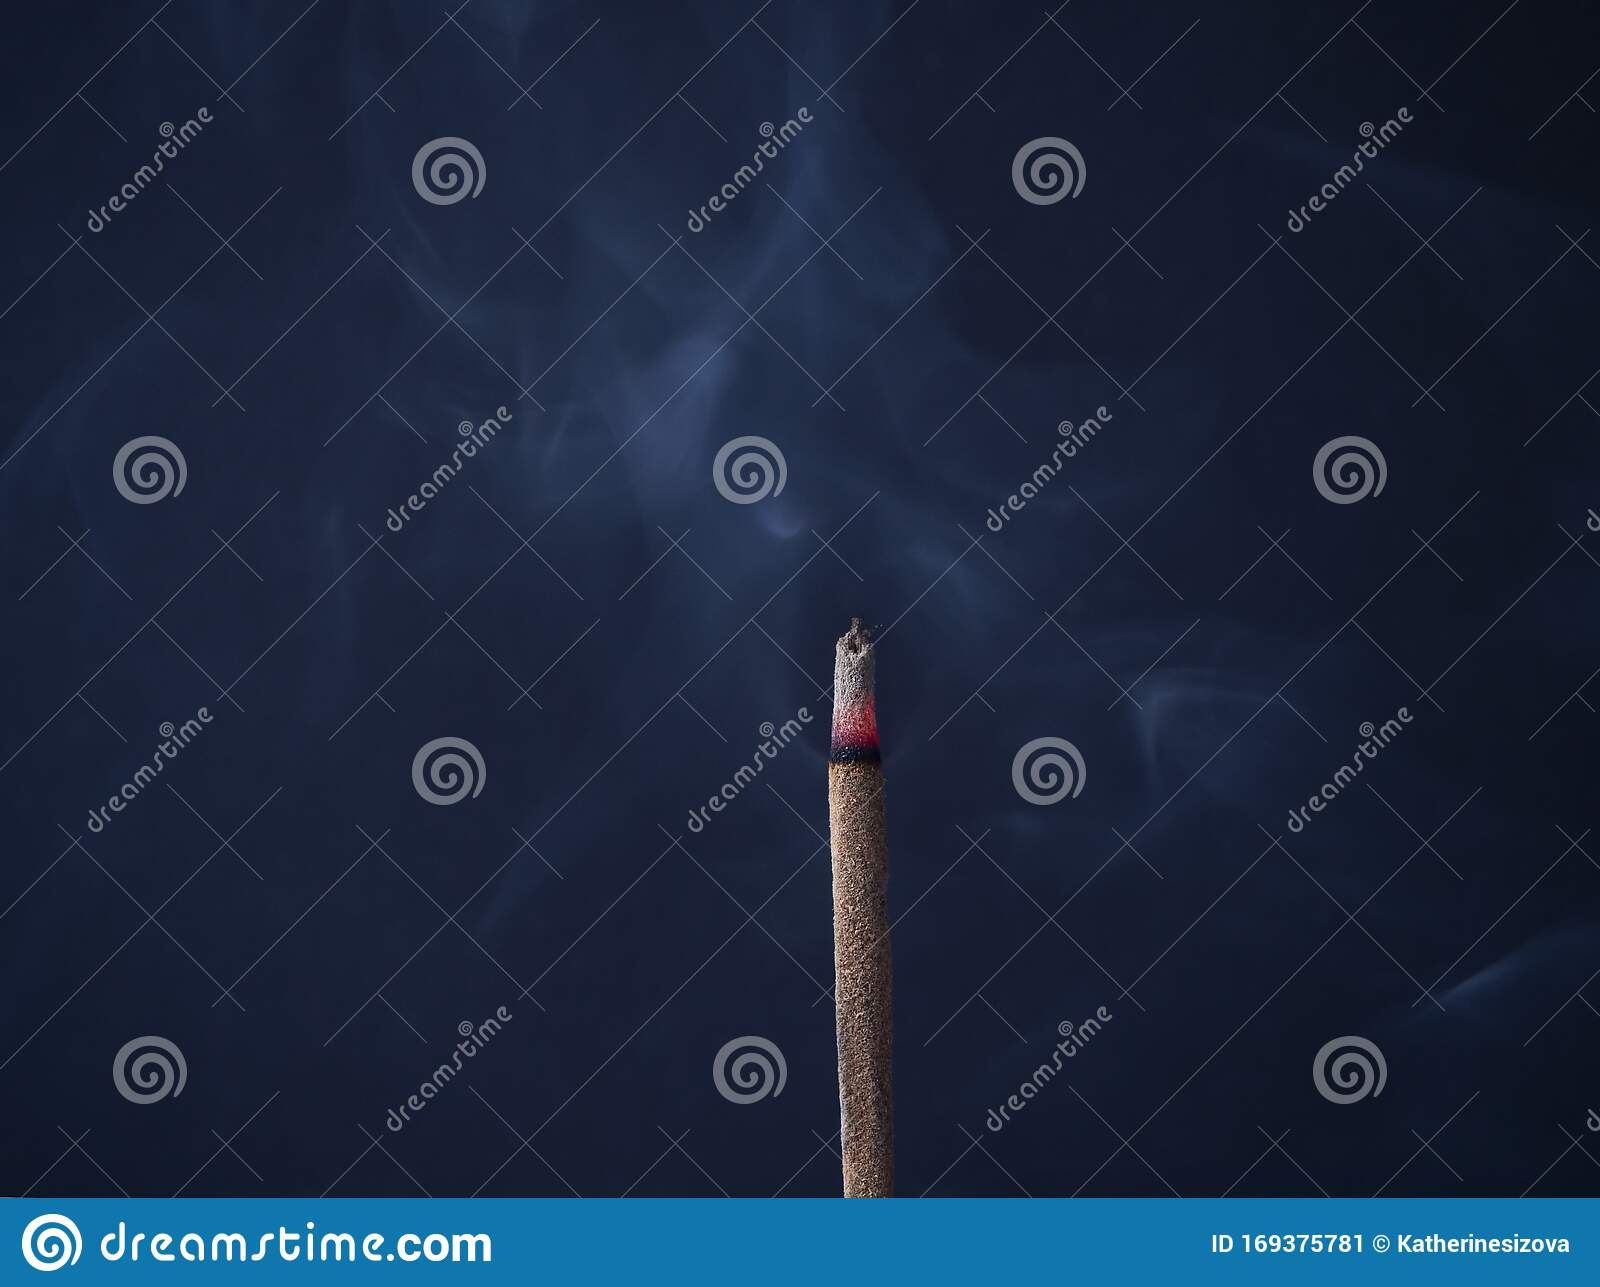 Aromatic Incense Stick Is Burning With Beautiful Gray Curls Of Smoke On A Dark Blue Background In A Meditation Room Stock Image Image Of Incenses Dark 169375781